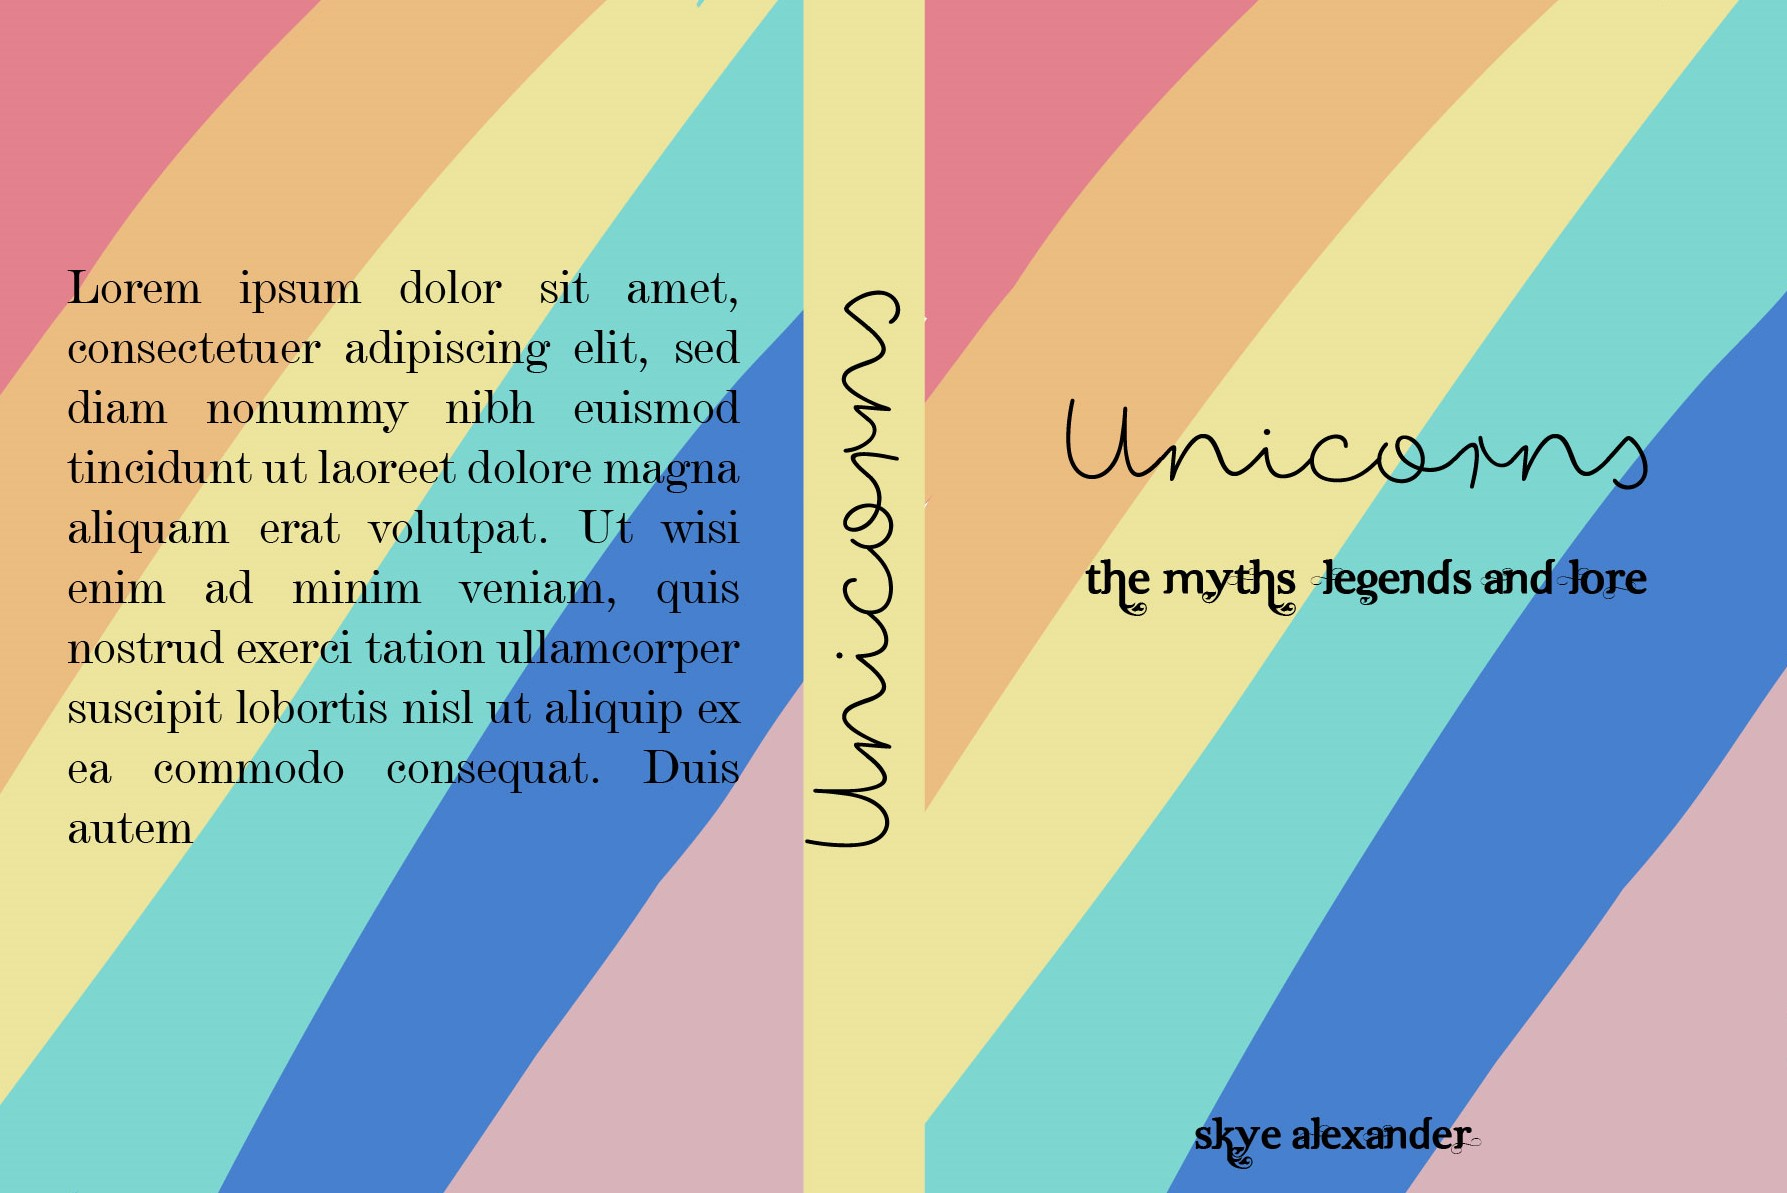 Unicorns Type cover 2